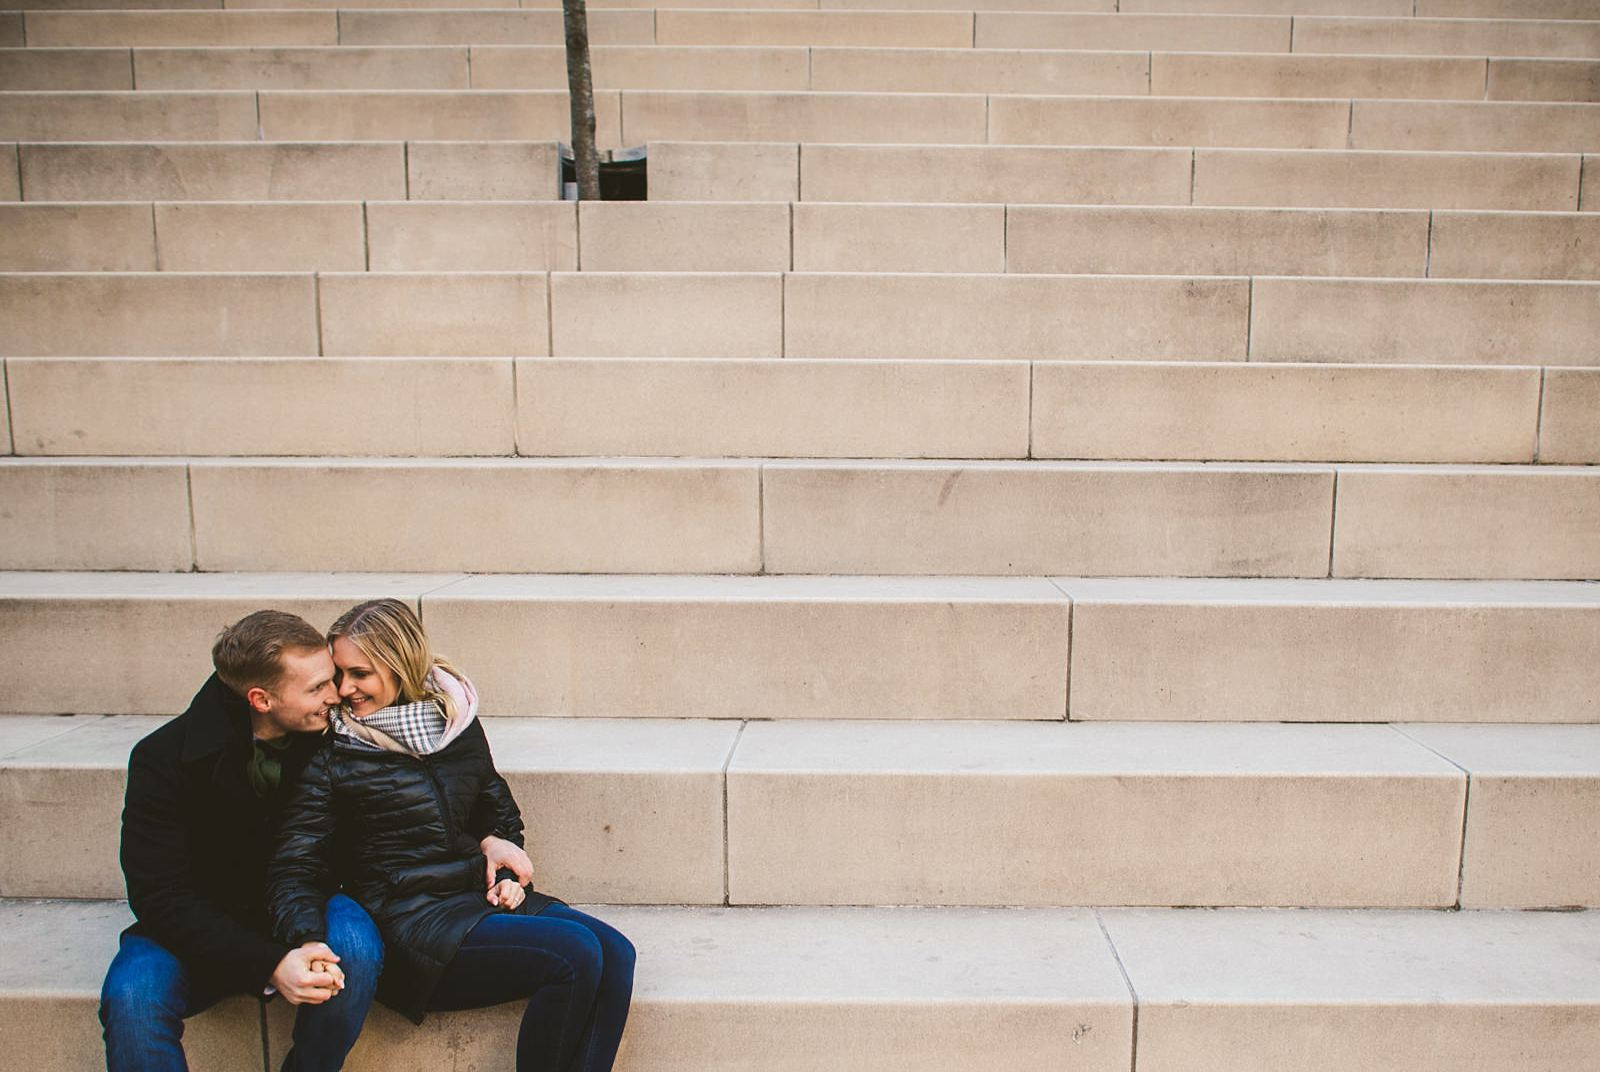 19 bet engagement photos ever - The Prefect Chicago Proposal // Eva + Vitalij